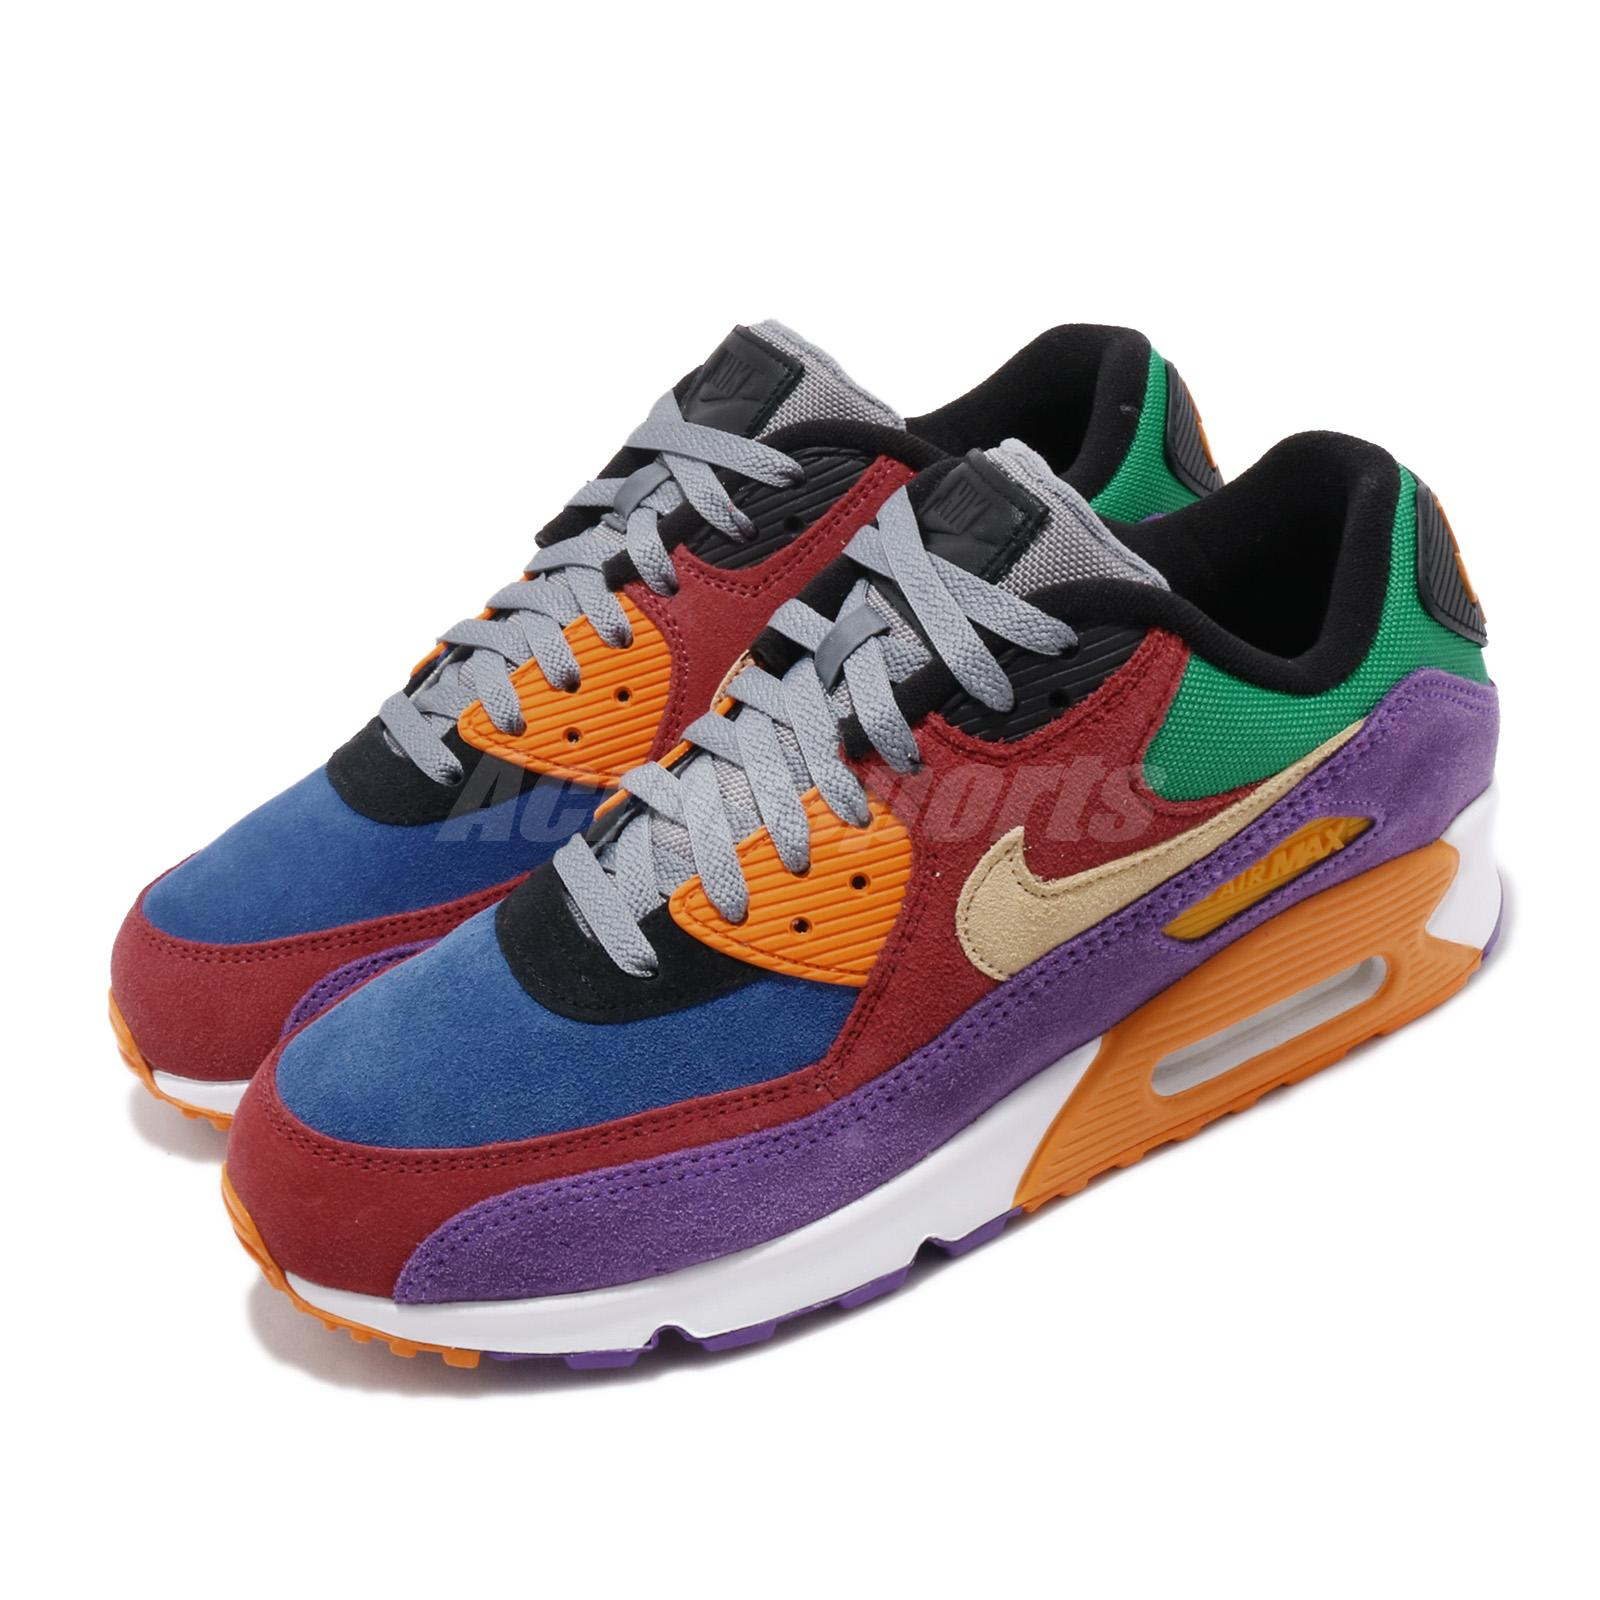 Nike WMNS Air Max 90 Essential | Red | Sneakers | 616730 600